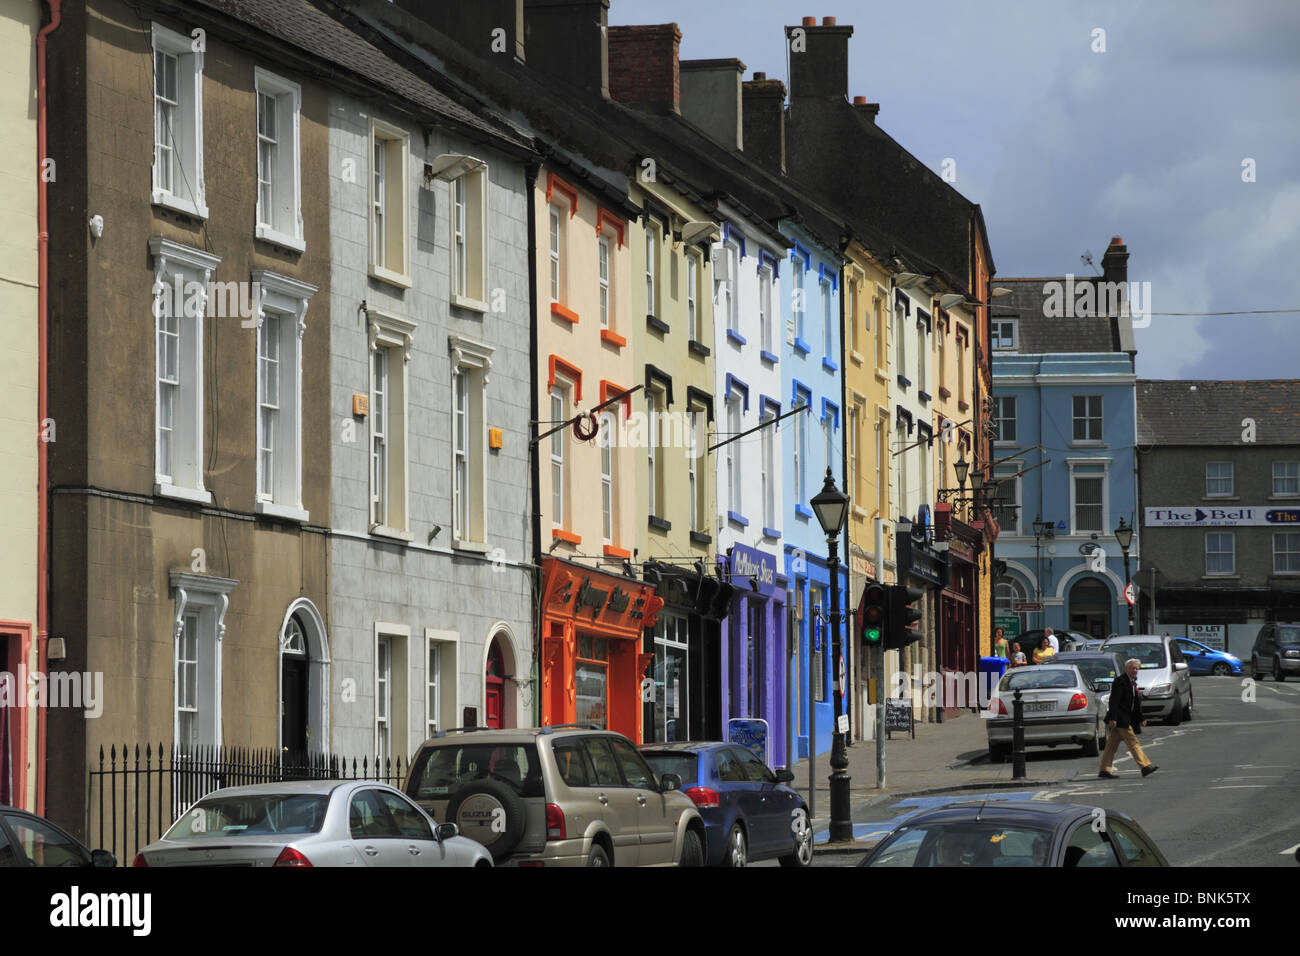 Colourful shop fronts on the main street in Cahir, Rep of Ireland. - Stock Image